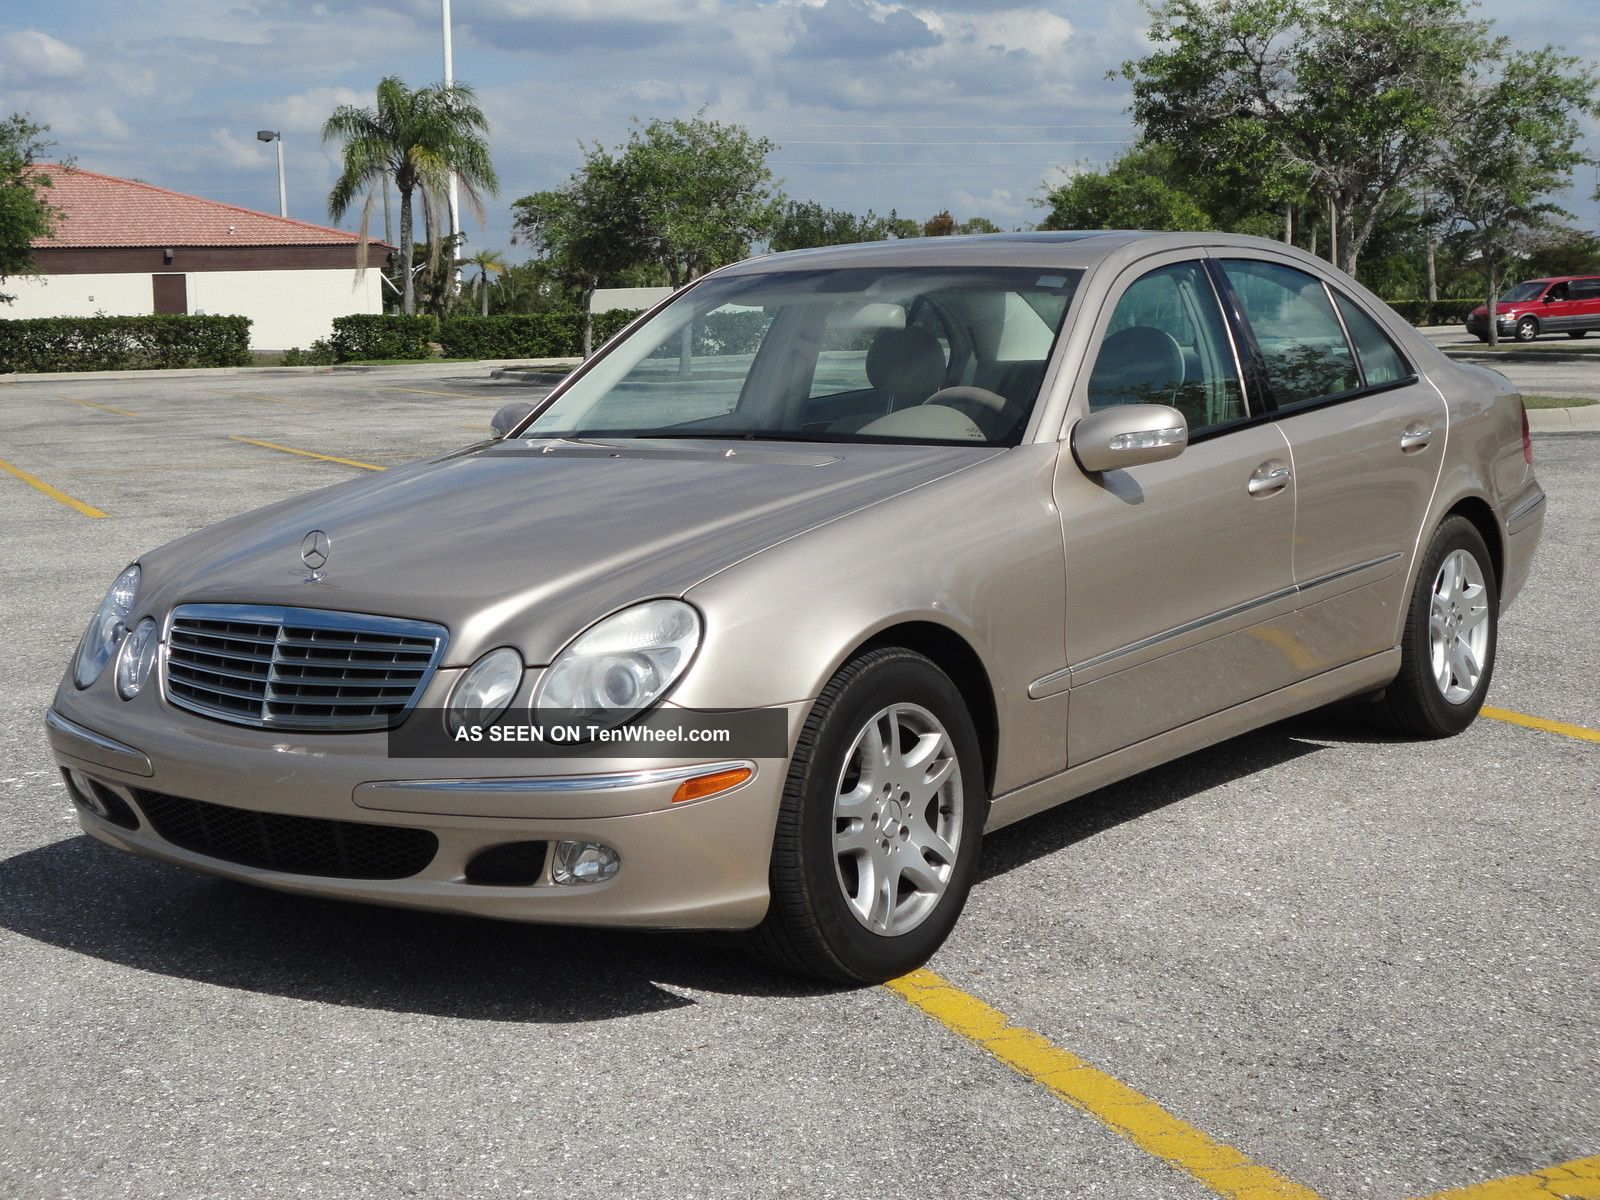 2003 mercedes benz e320 florida car wonderful shape. Black Bedroom Furniture Sets. Home Design Ideas